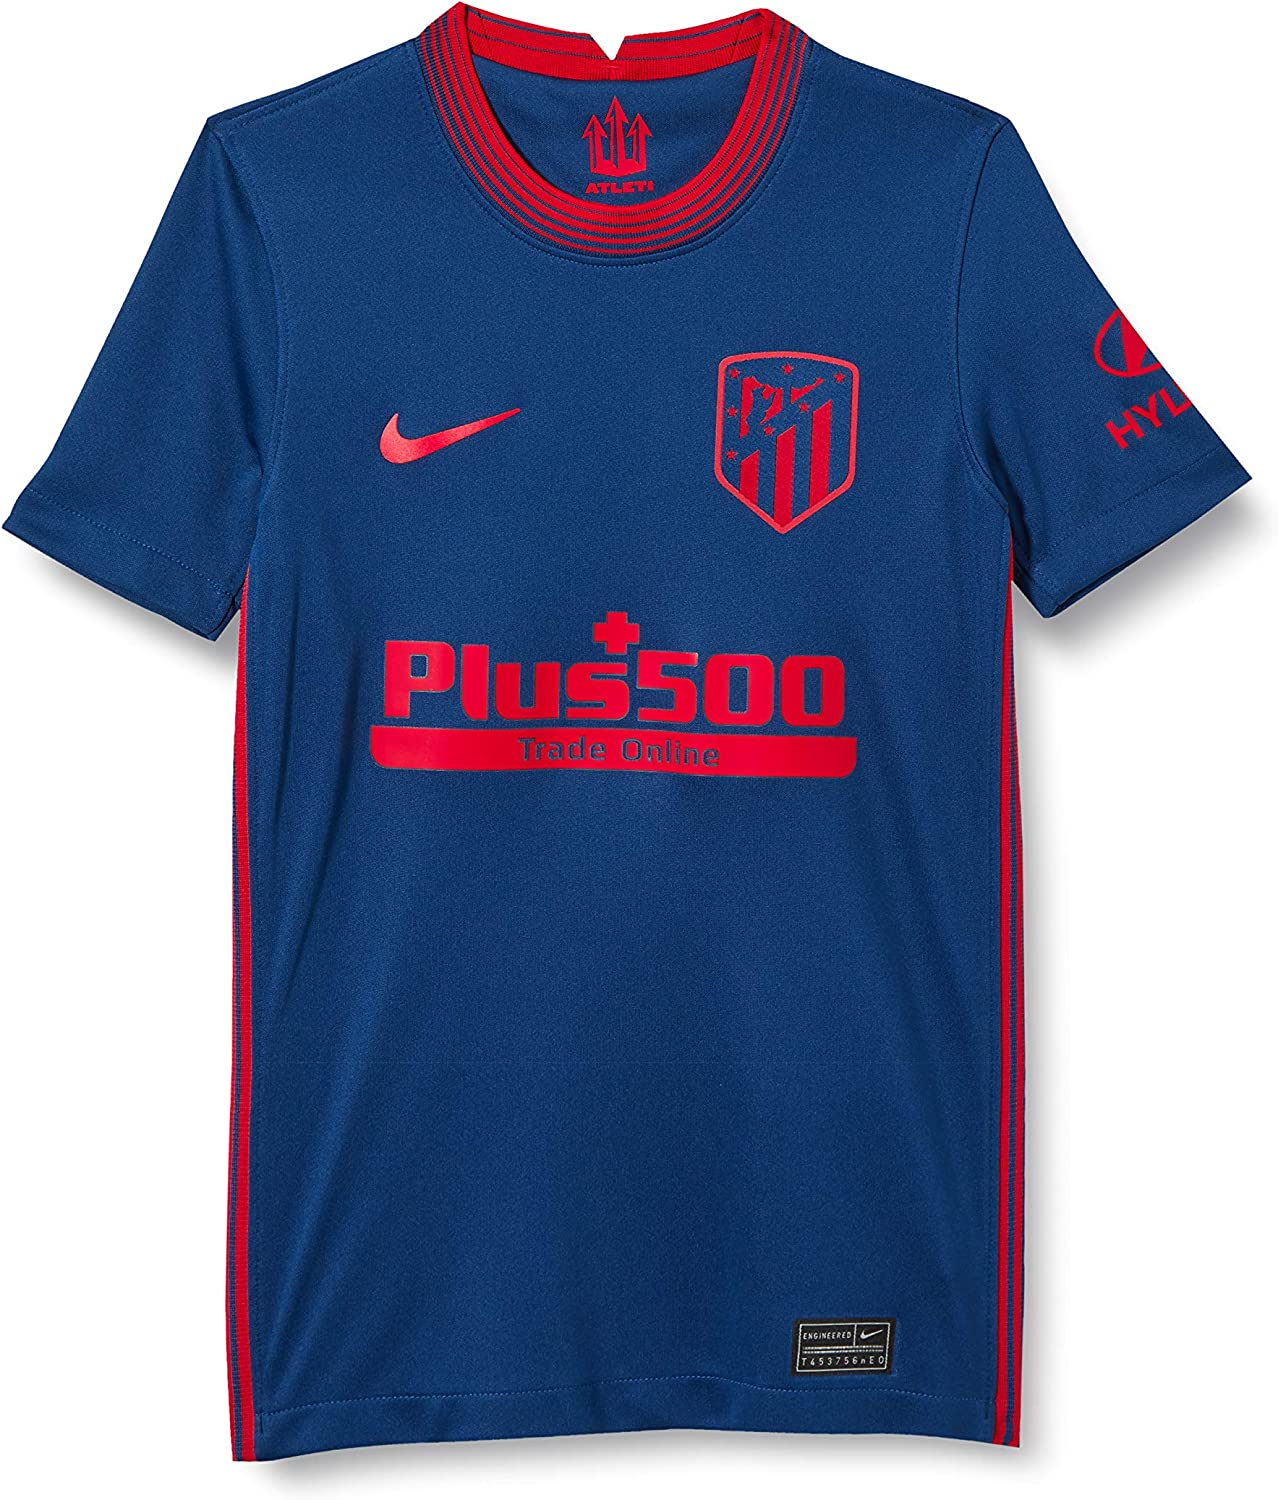 Nike 2020-2021 Raleigh Mall Atletico Special sale item Madrid Away Soccer T-Shirt Jers Football